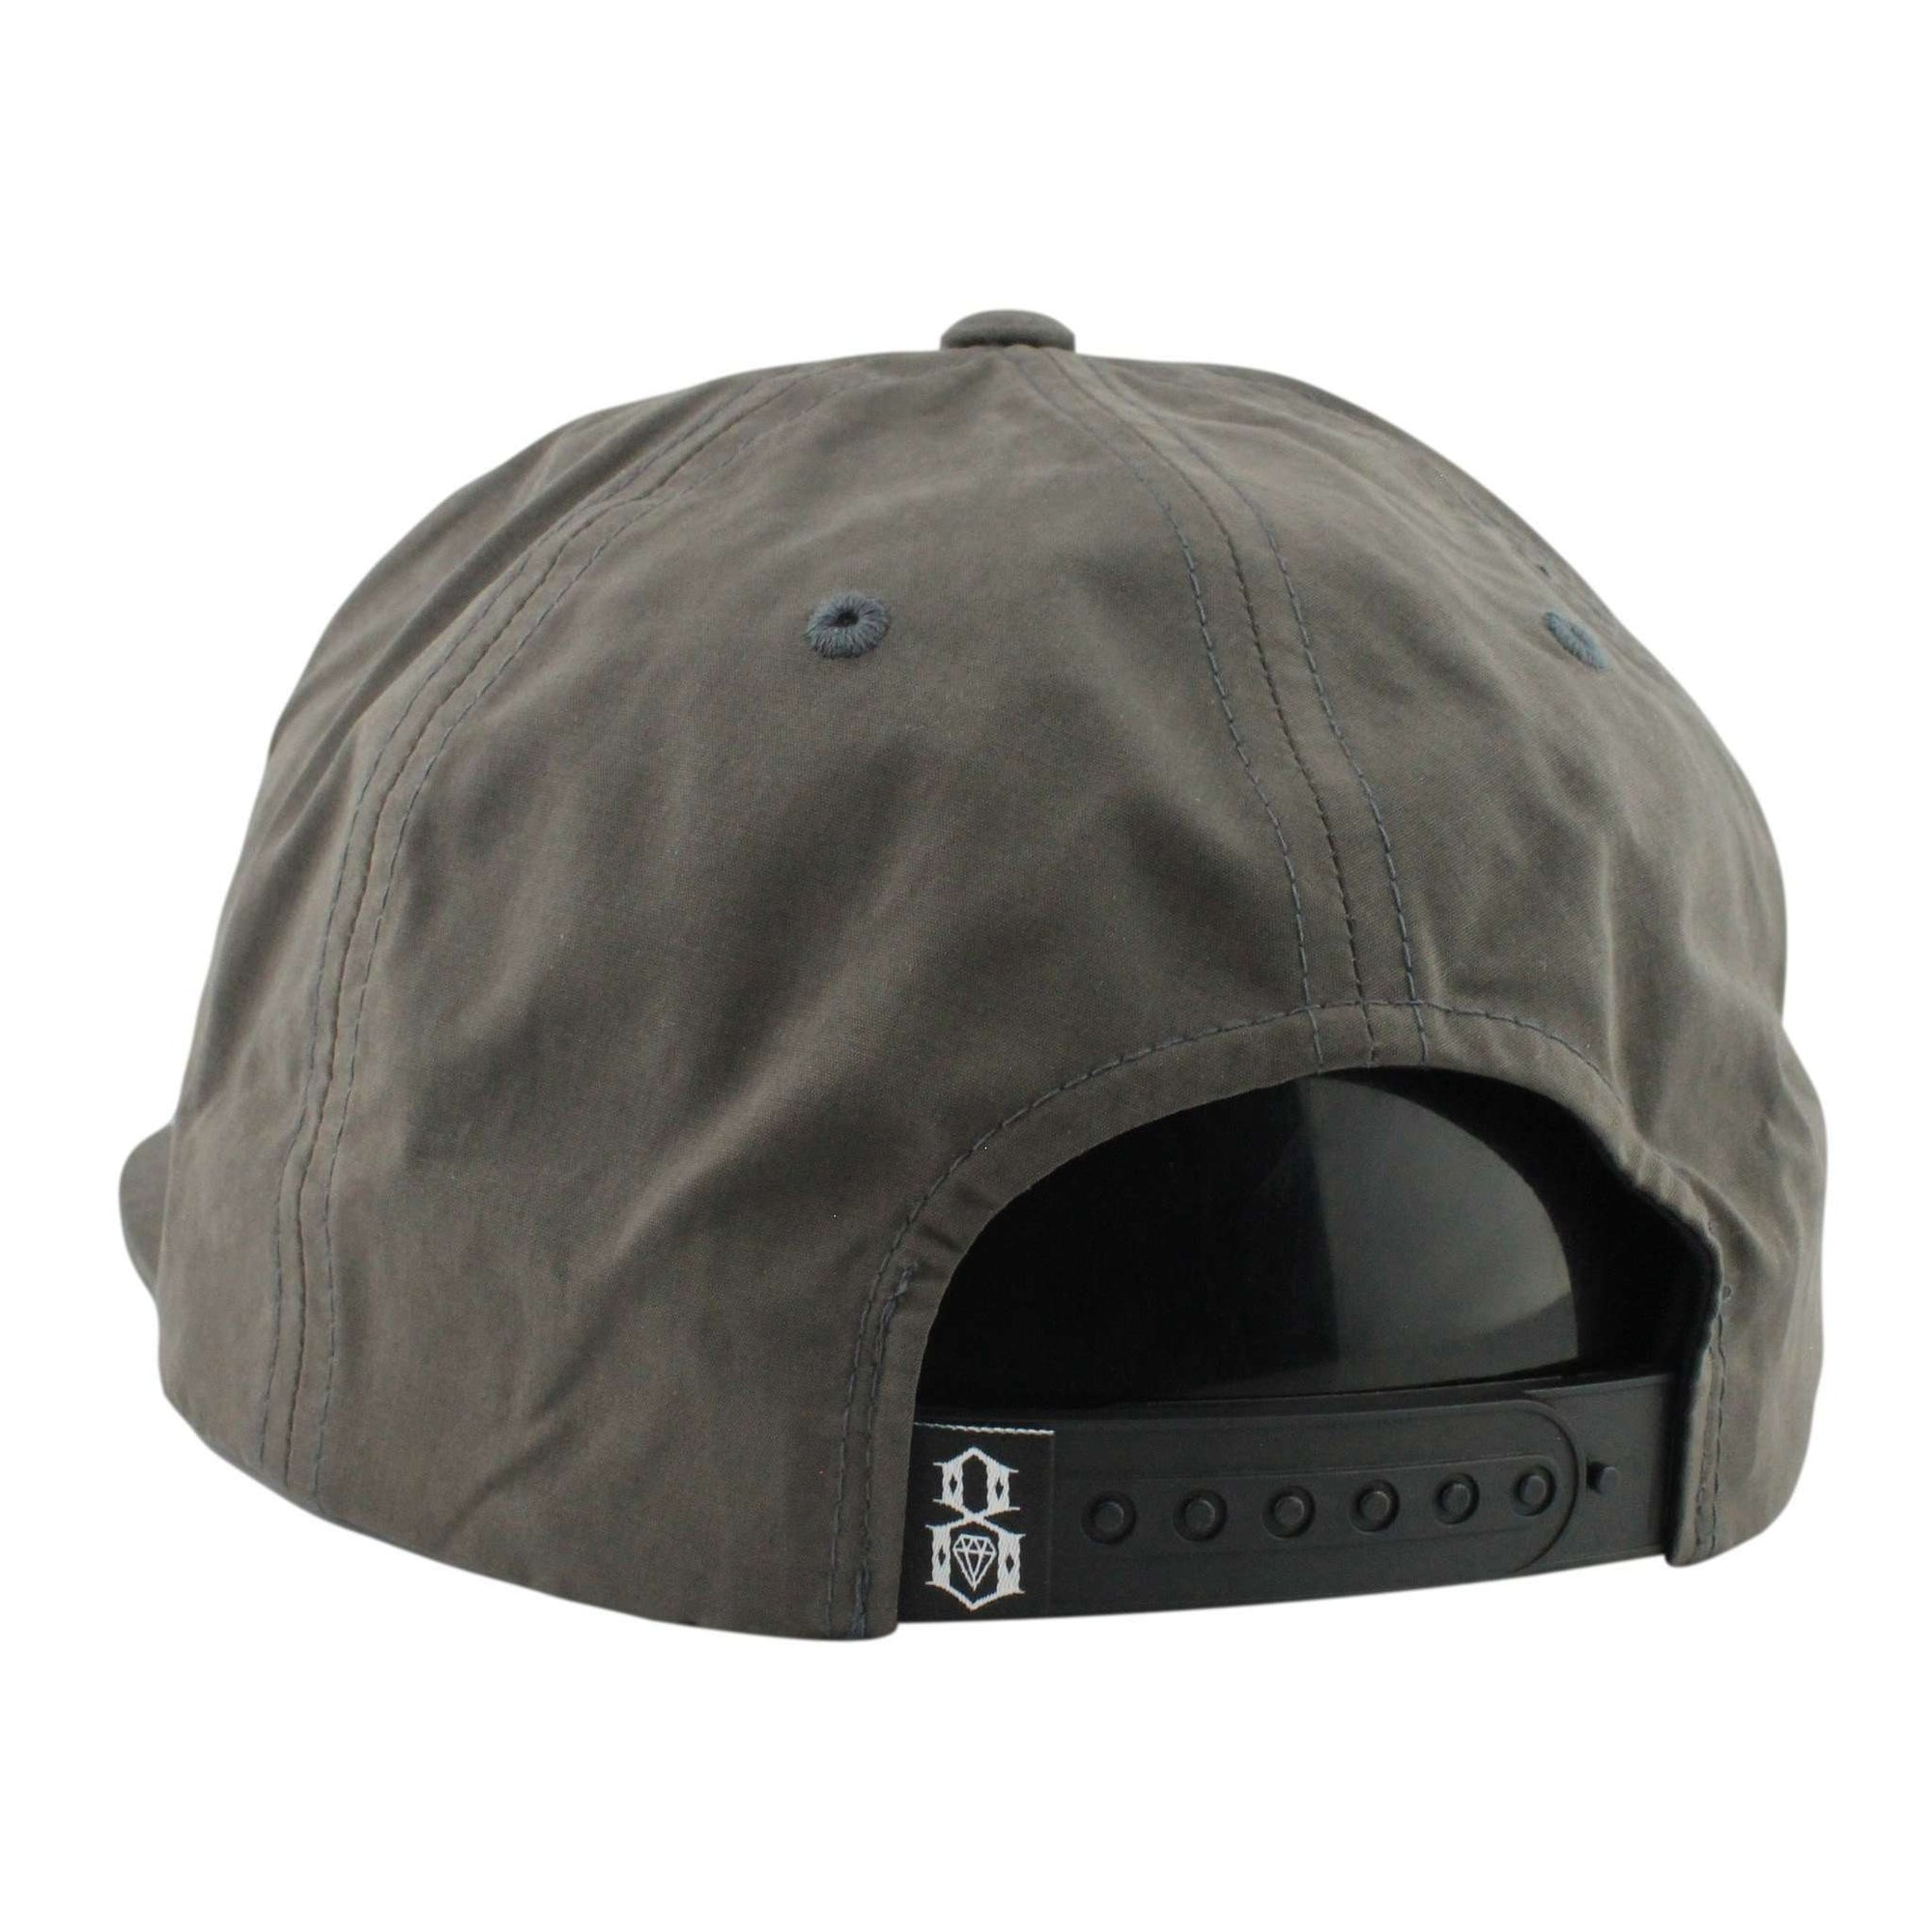 9fb9cb3f96f29 Rebel 8 Rebel 8 Lakeview Charcoal Charcoal Unstructured Snapback